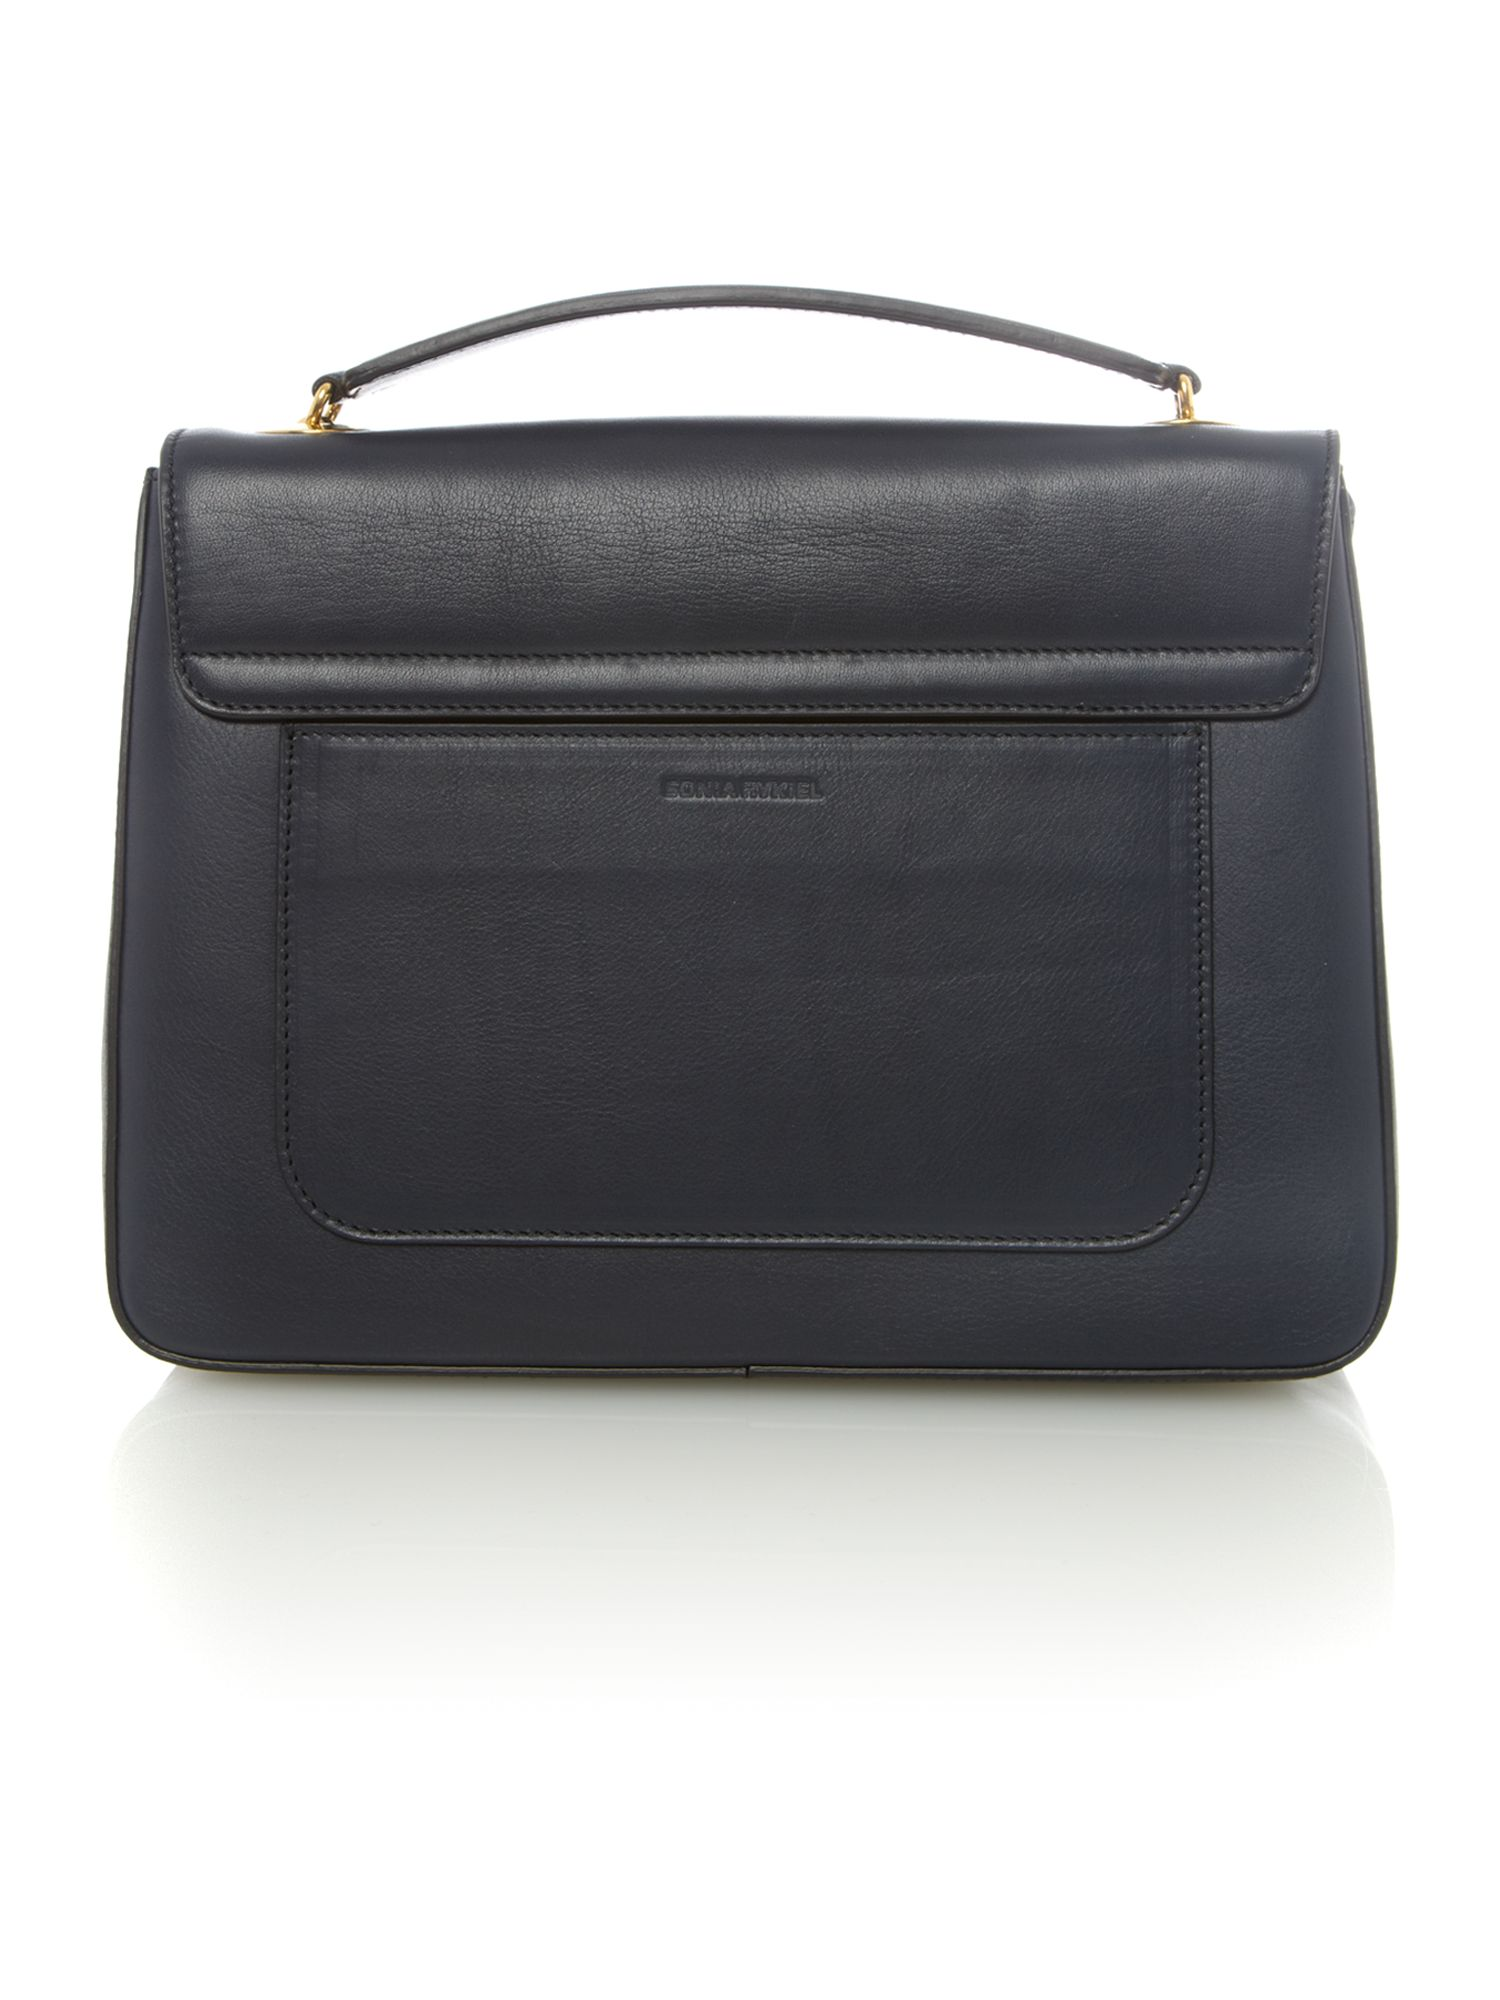 Mazarine navy chain tote bag